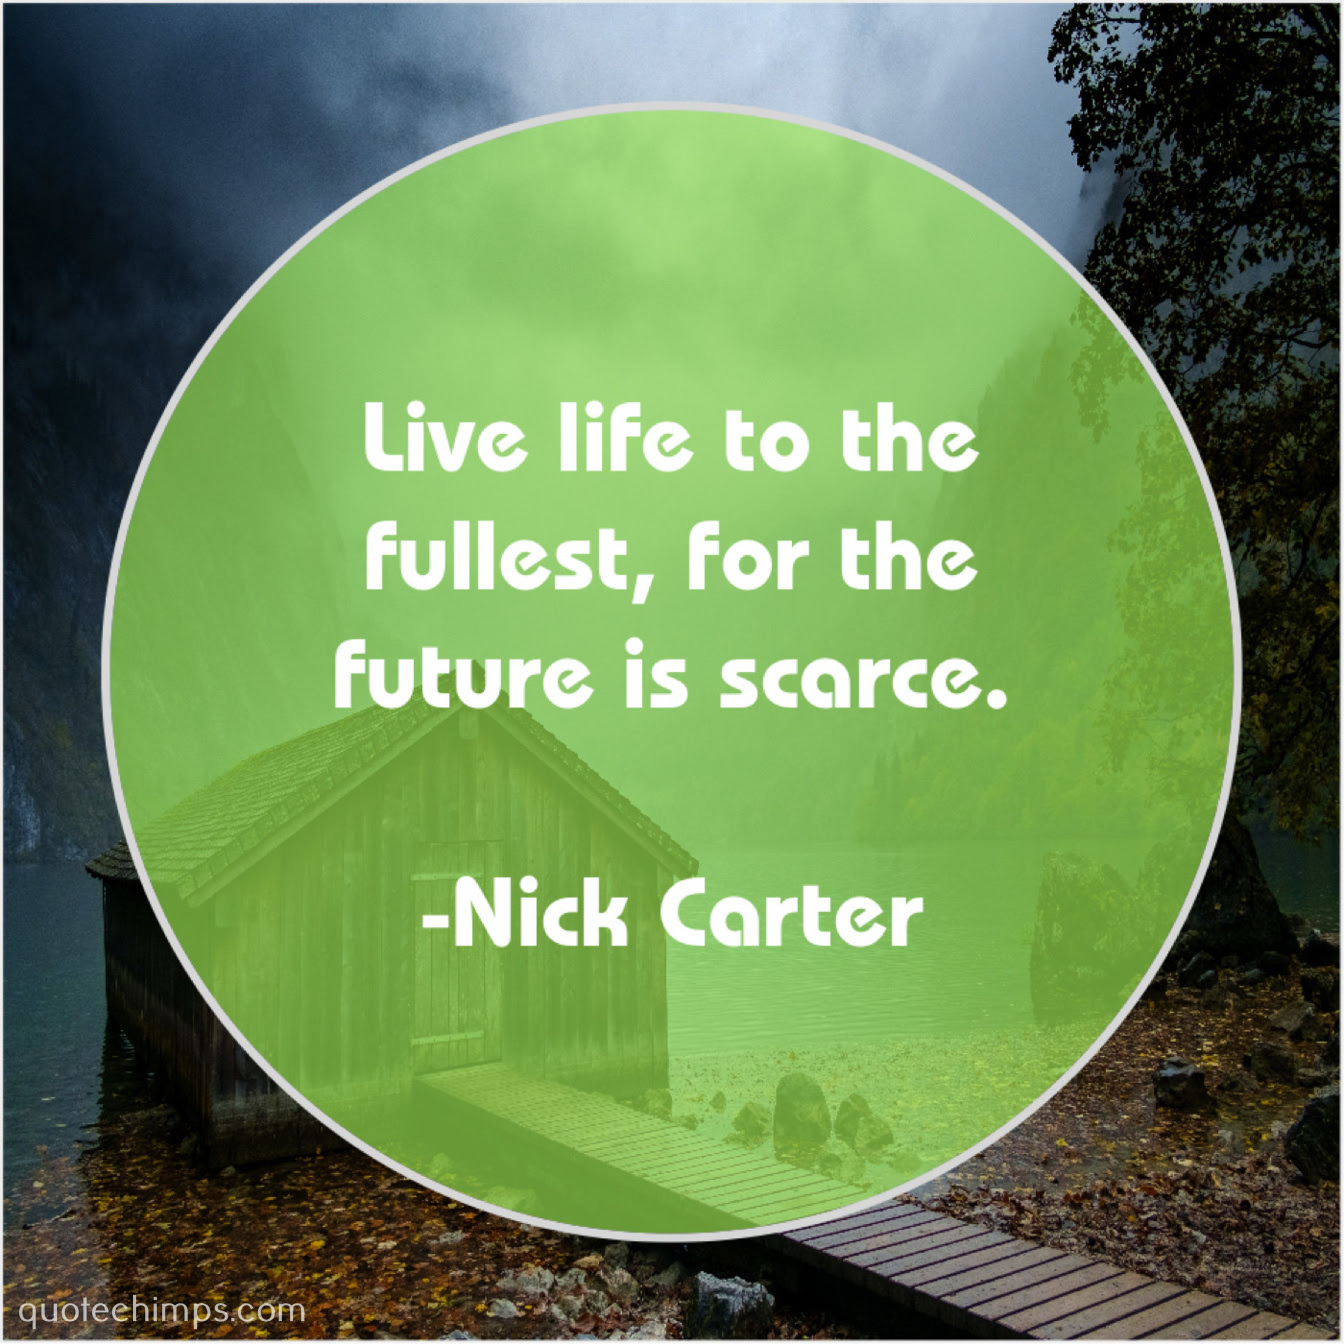 Nick Carter Live Life To The Fullest Quote Chimps